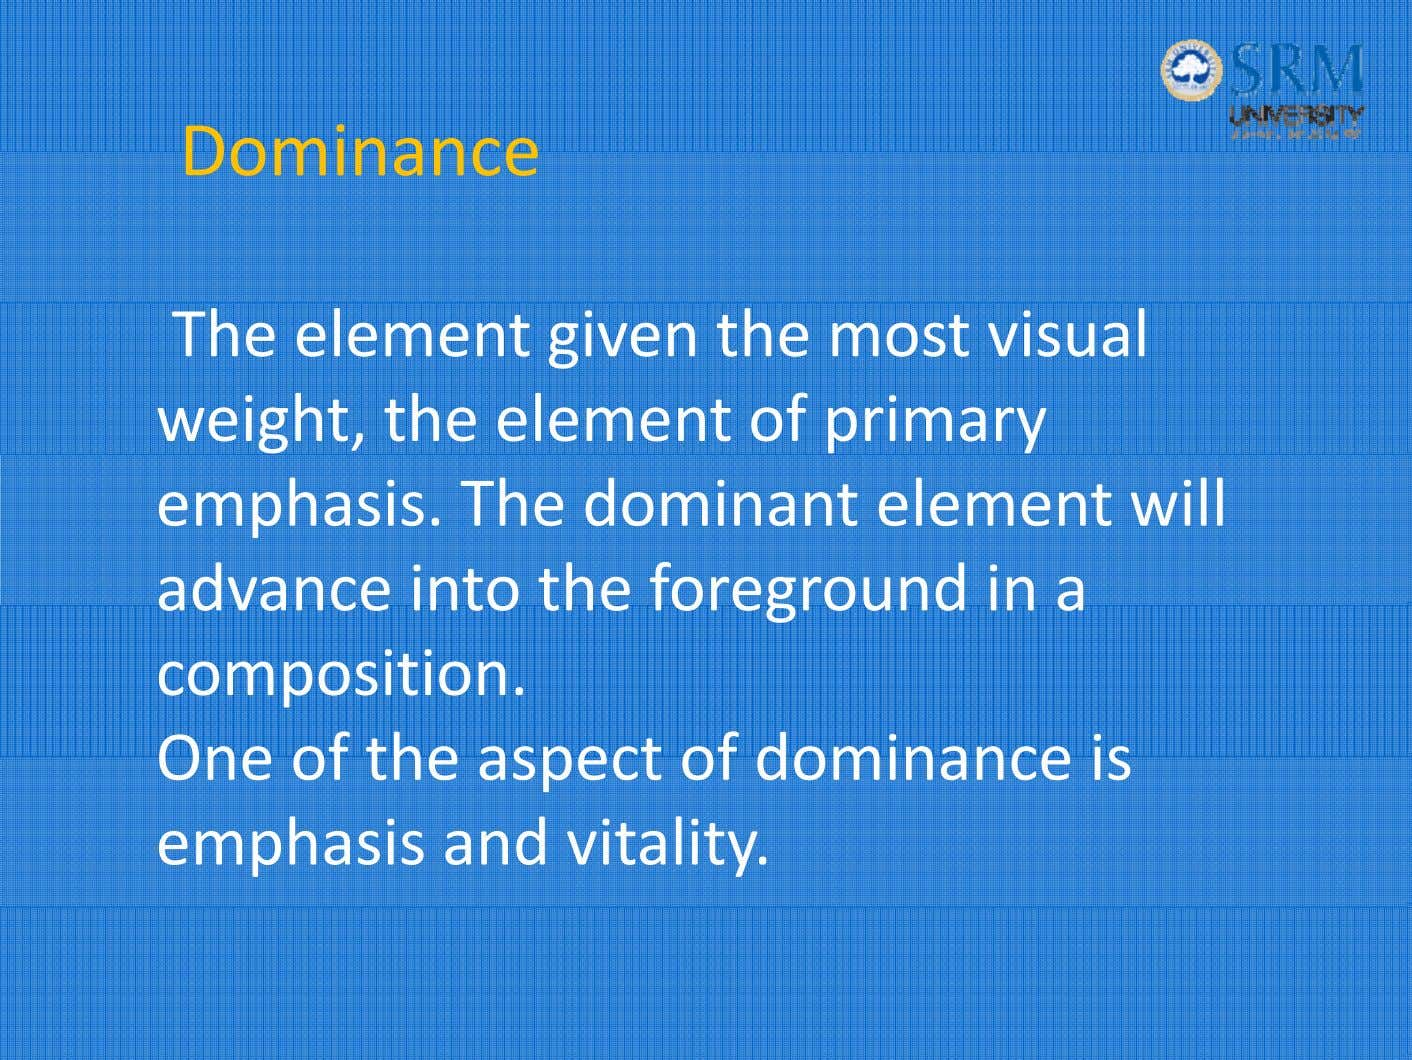 Dominance The element given the most visual weight, the element of primary emphasis. The dominant